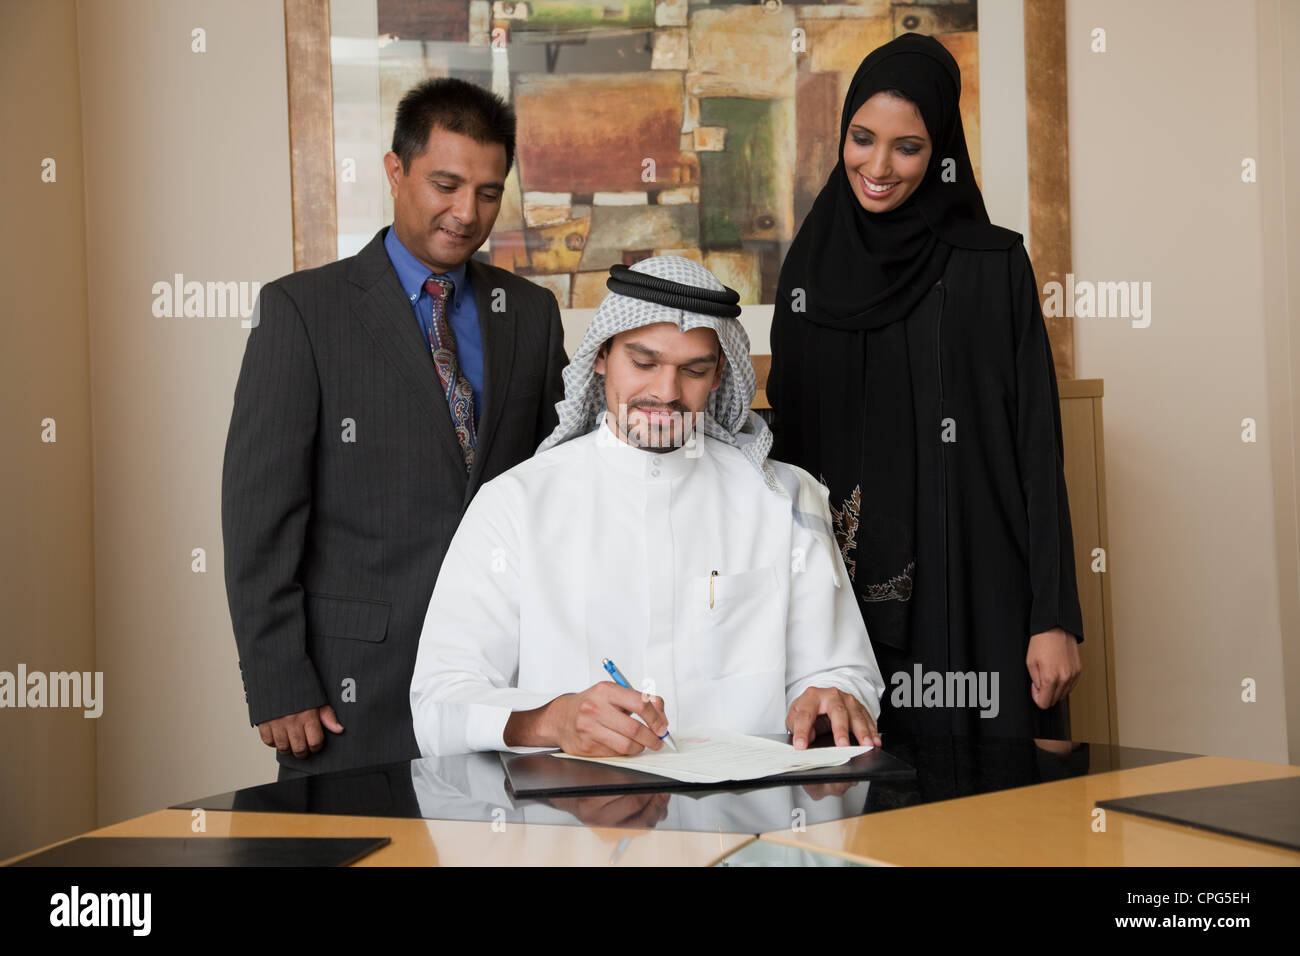 Arab businessman signing document, two colleague standing on the side. - Stock Image